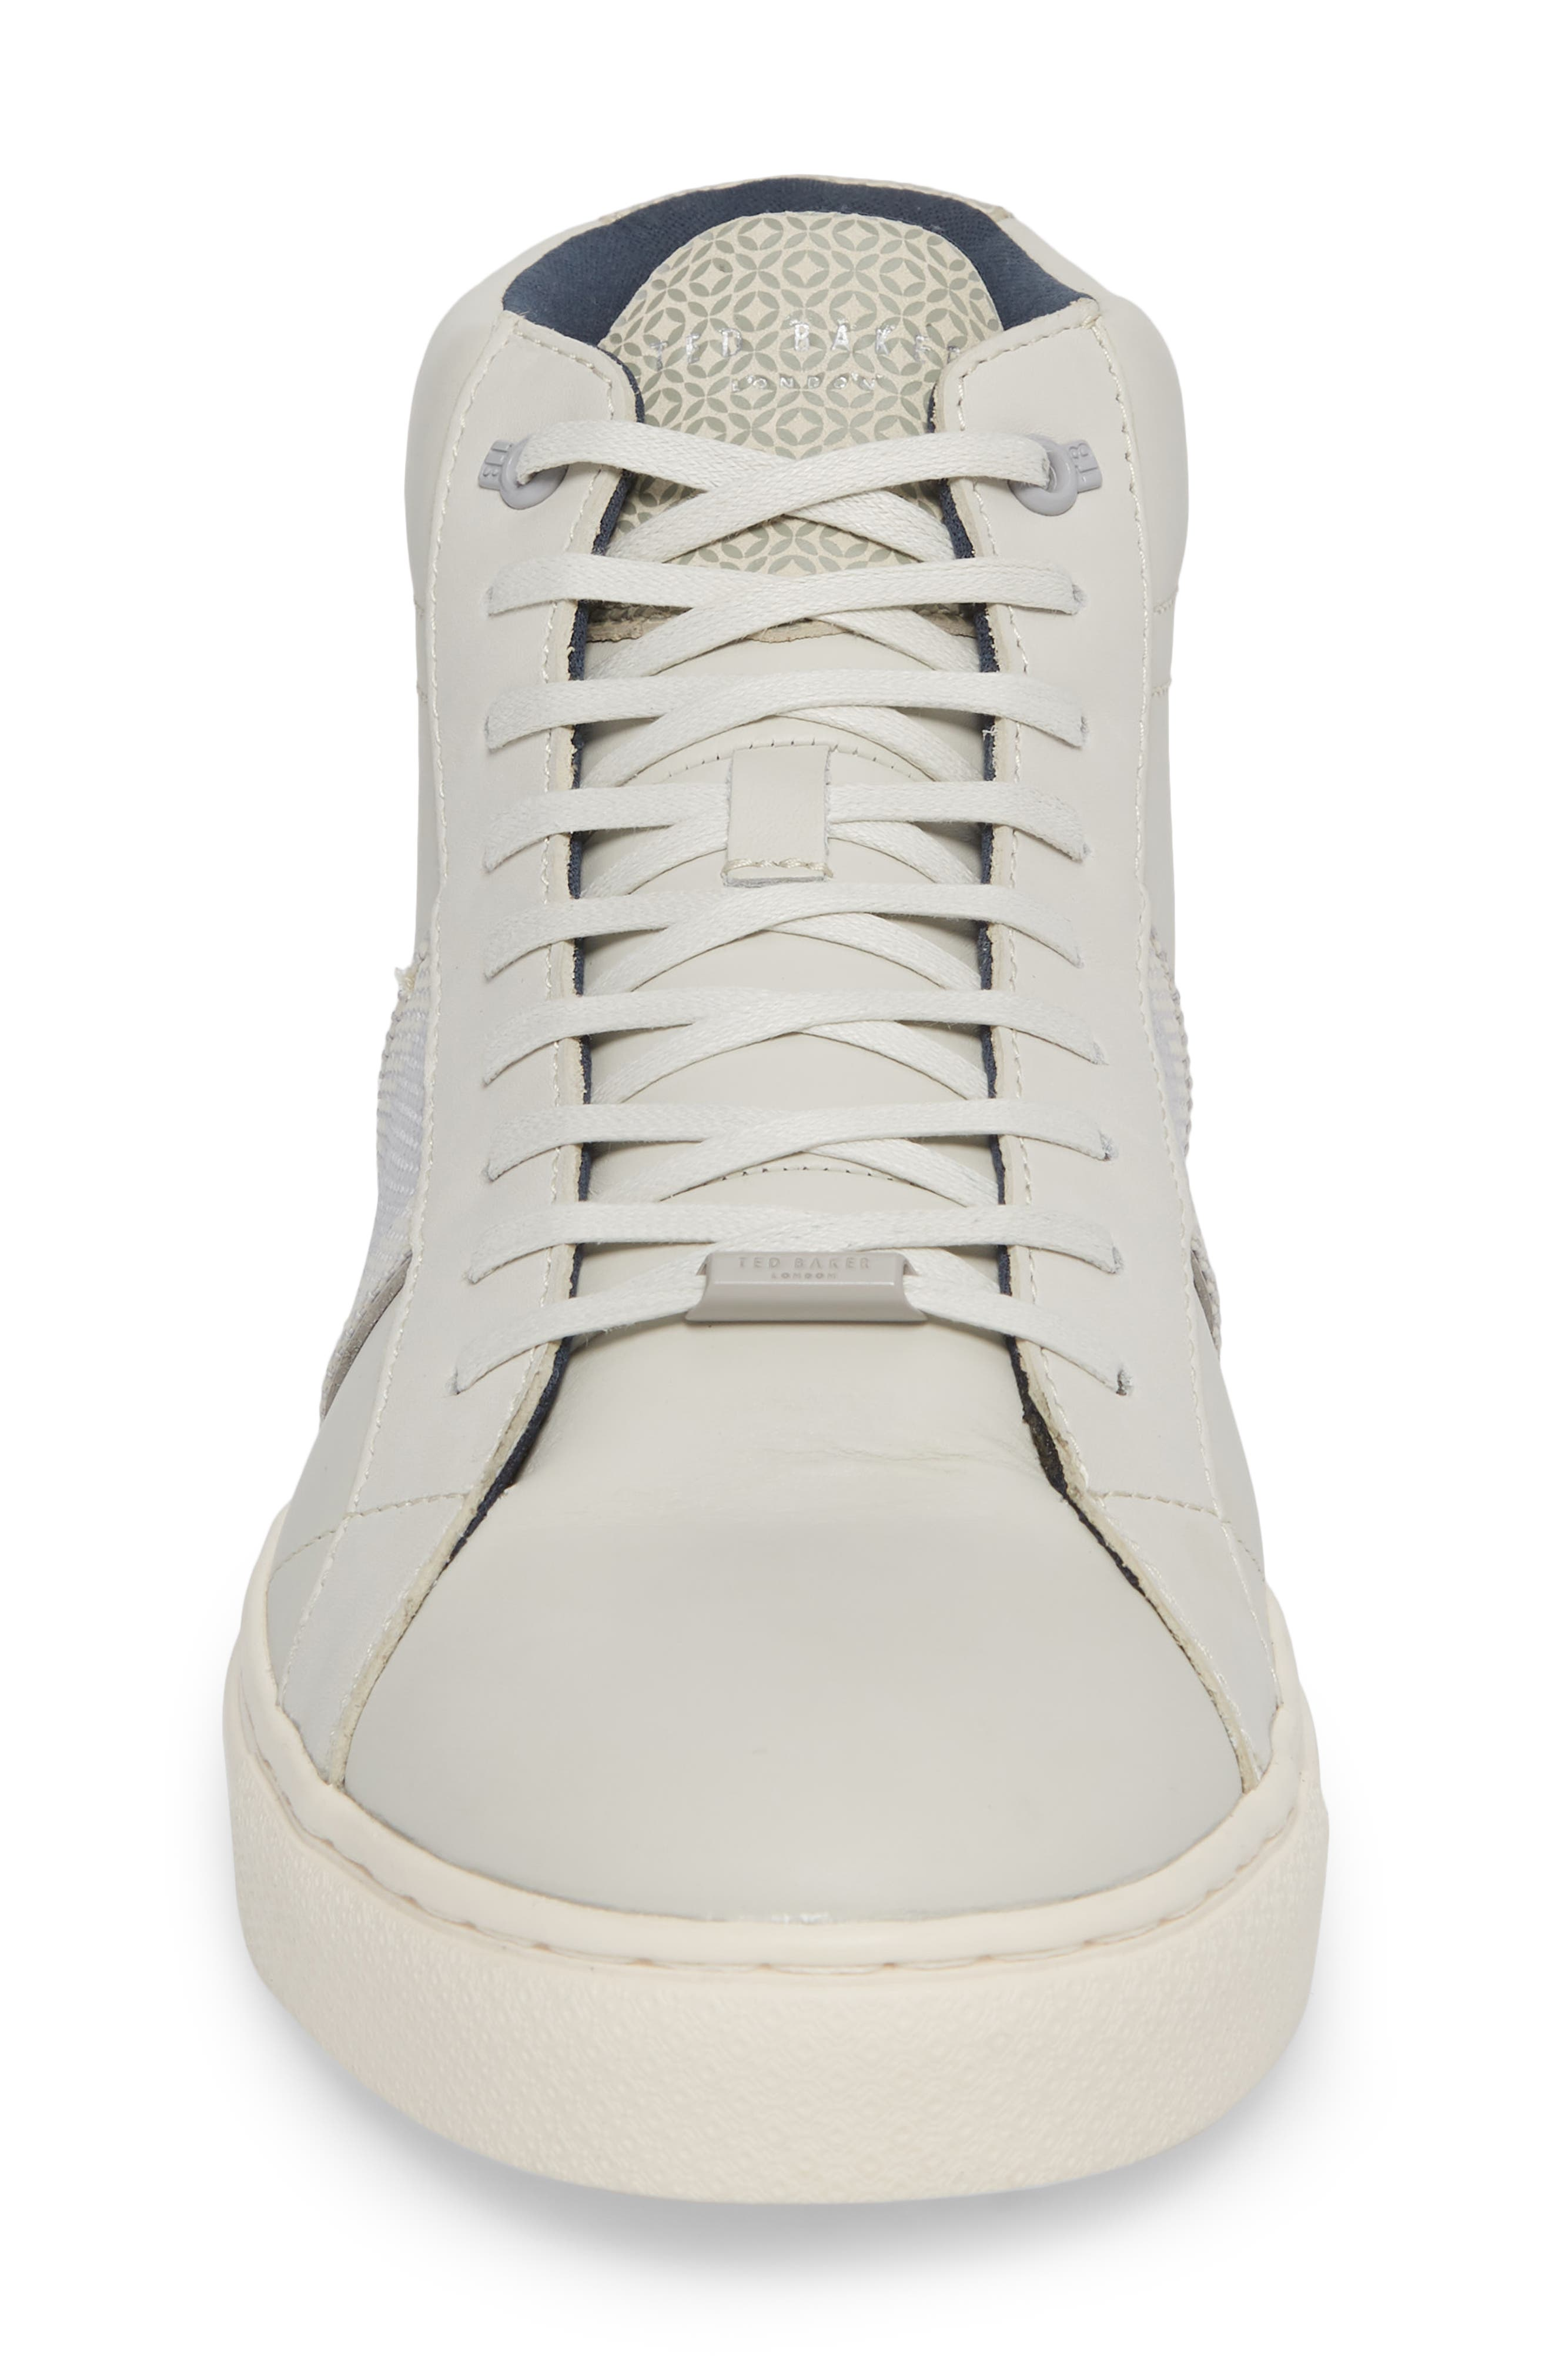 Cruuw High Top Sneaker,                             Alternate thumbnail 4, color,                             WHITE LEATHER